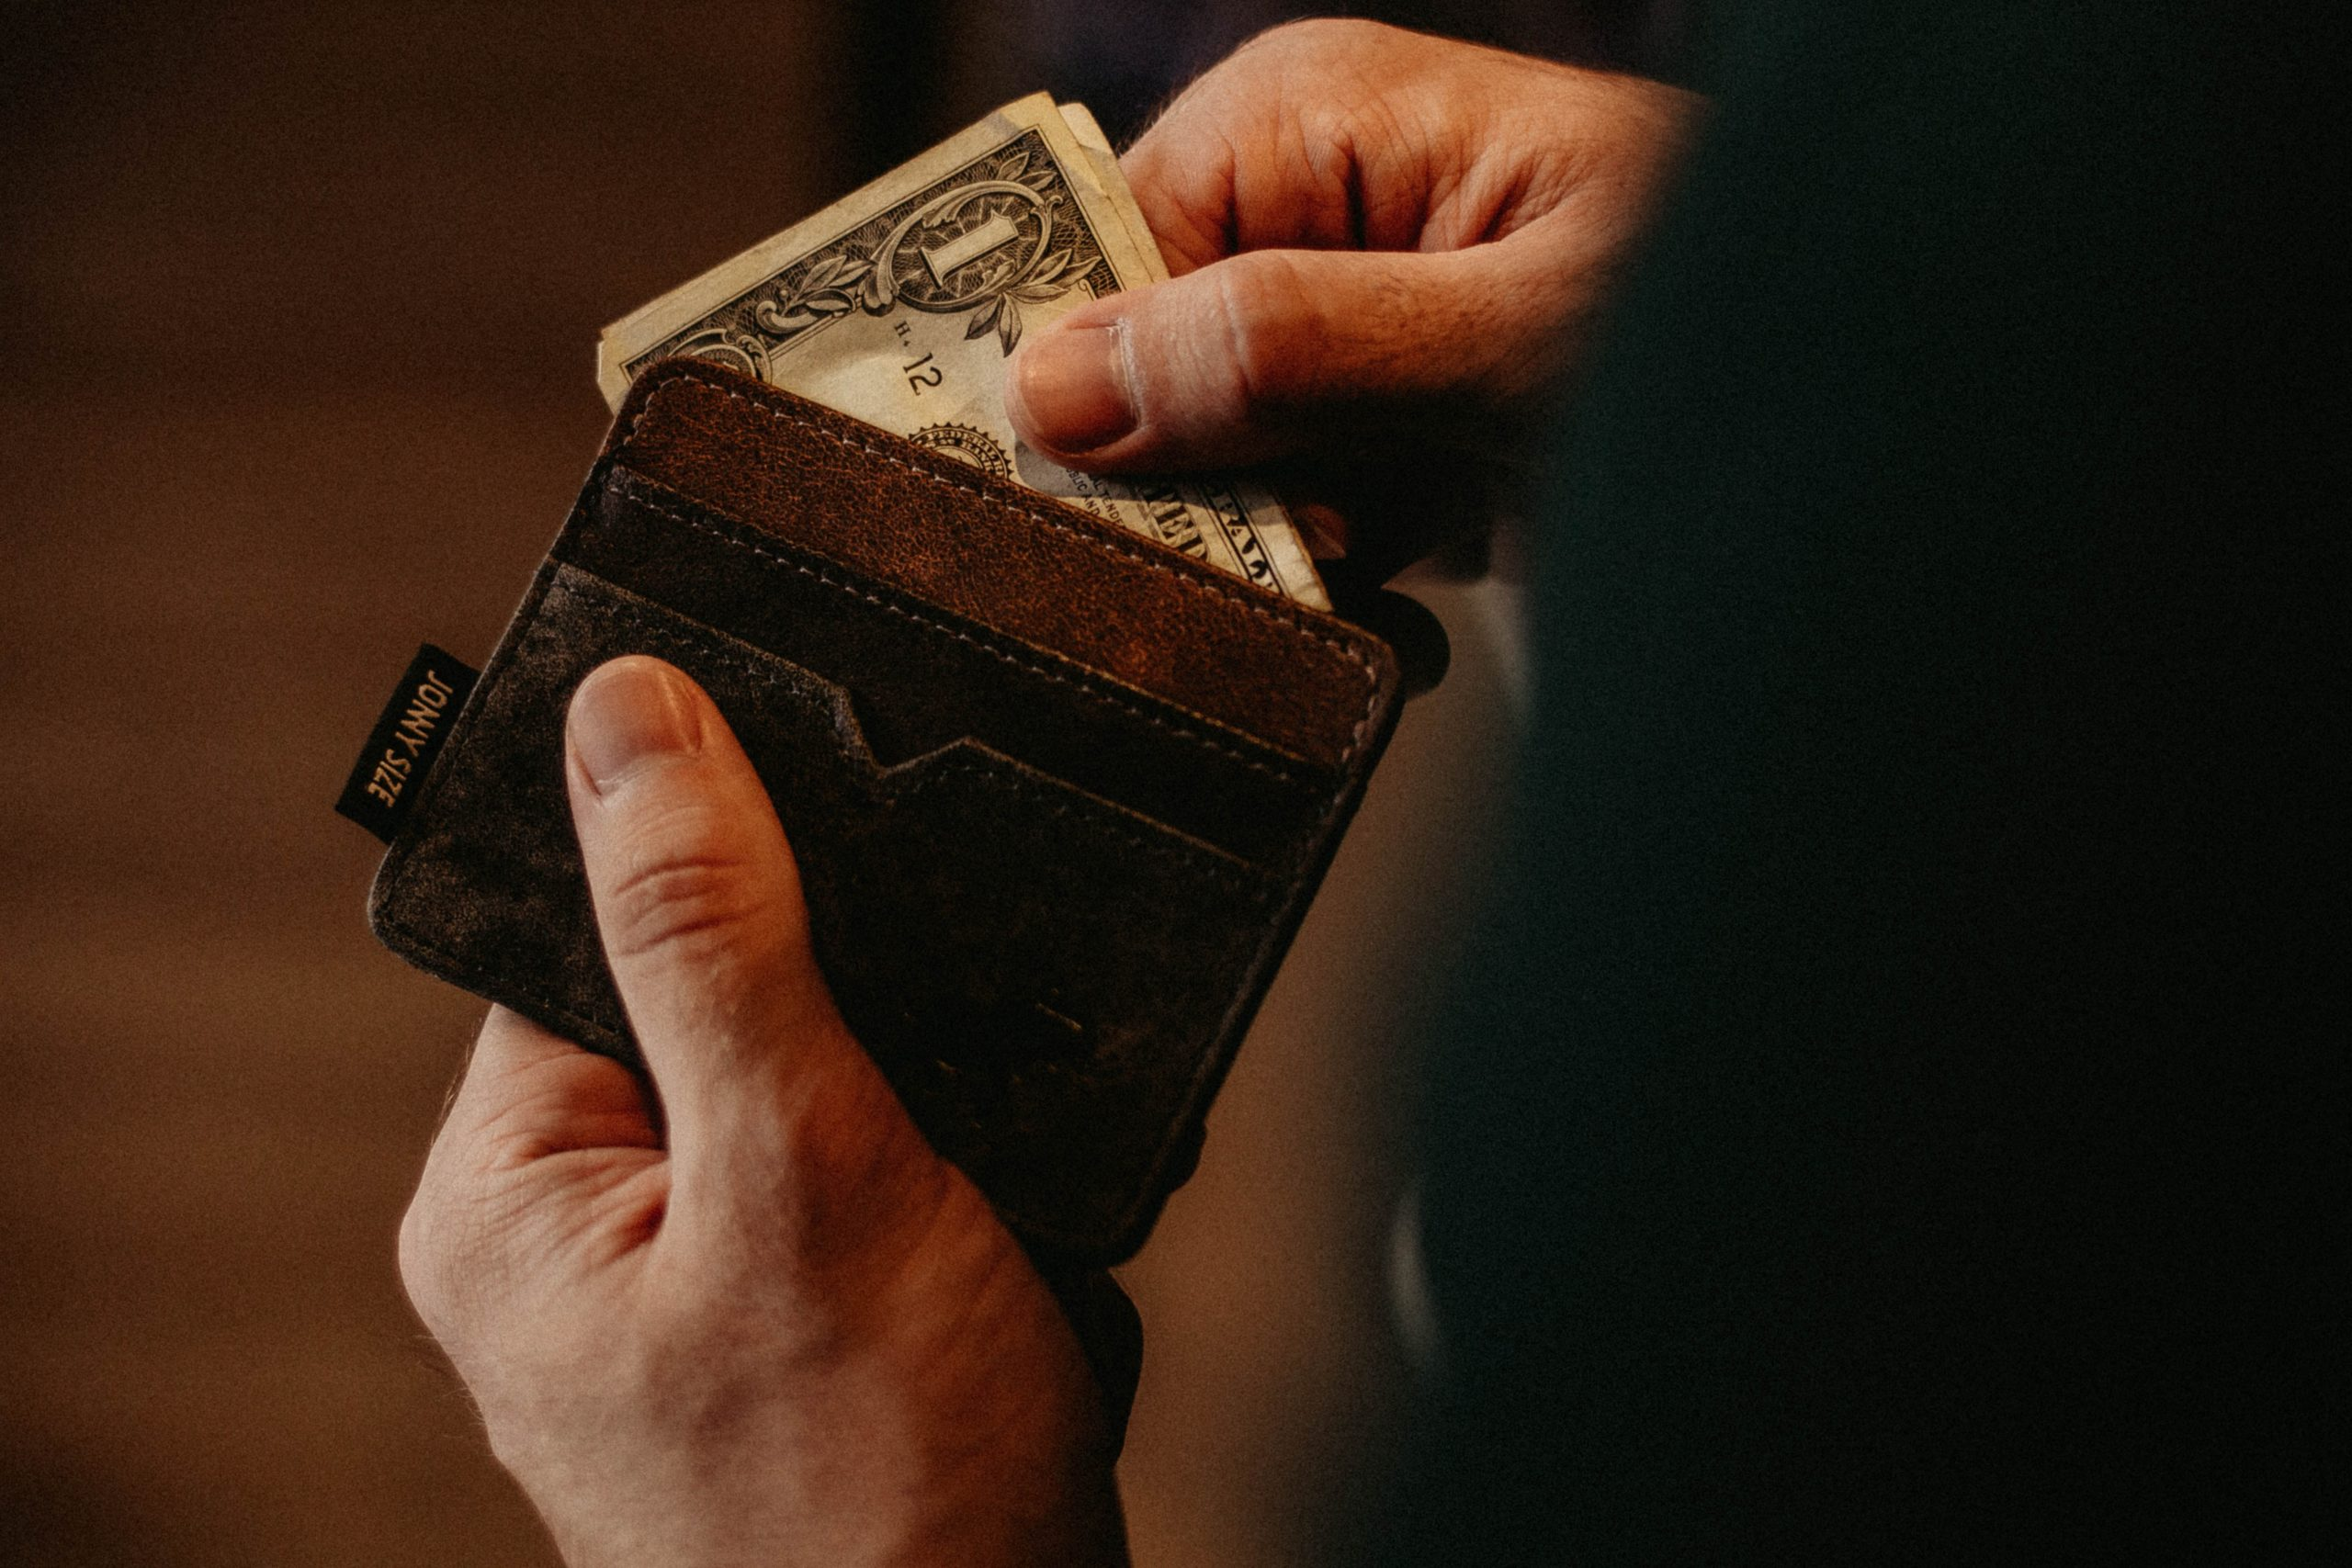 Hands place dollar bills into a brown leather wallet.